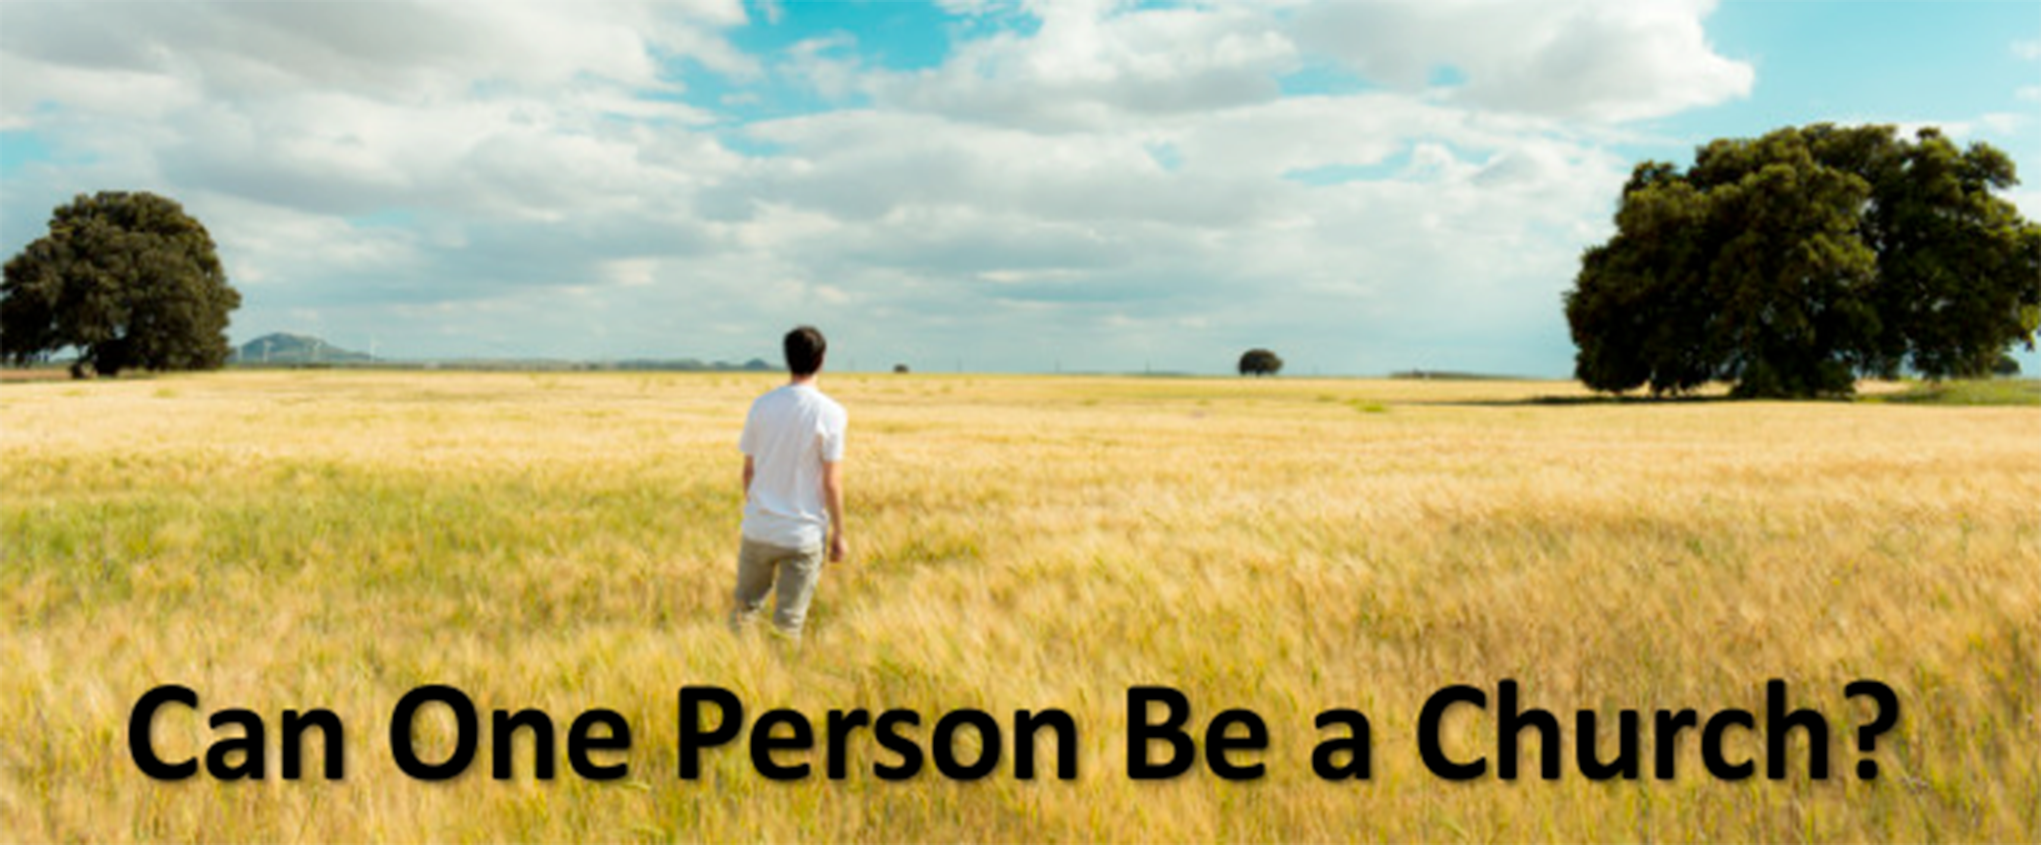 one-person-church